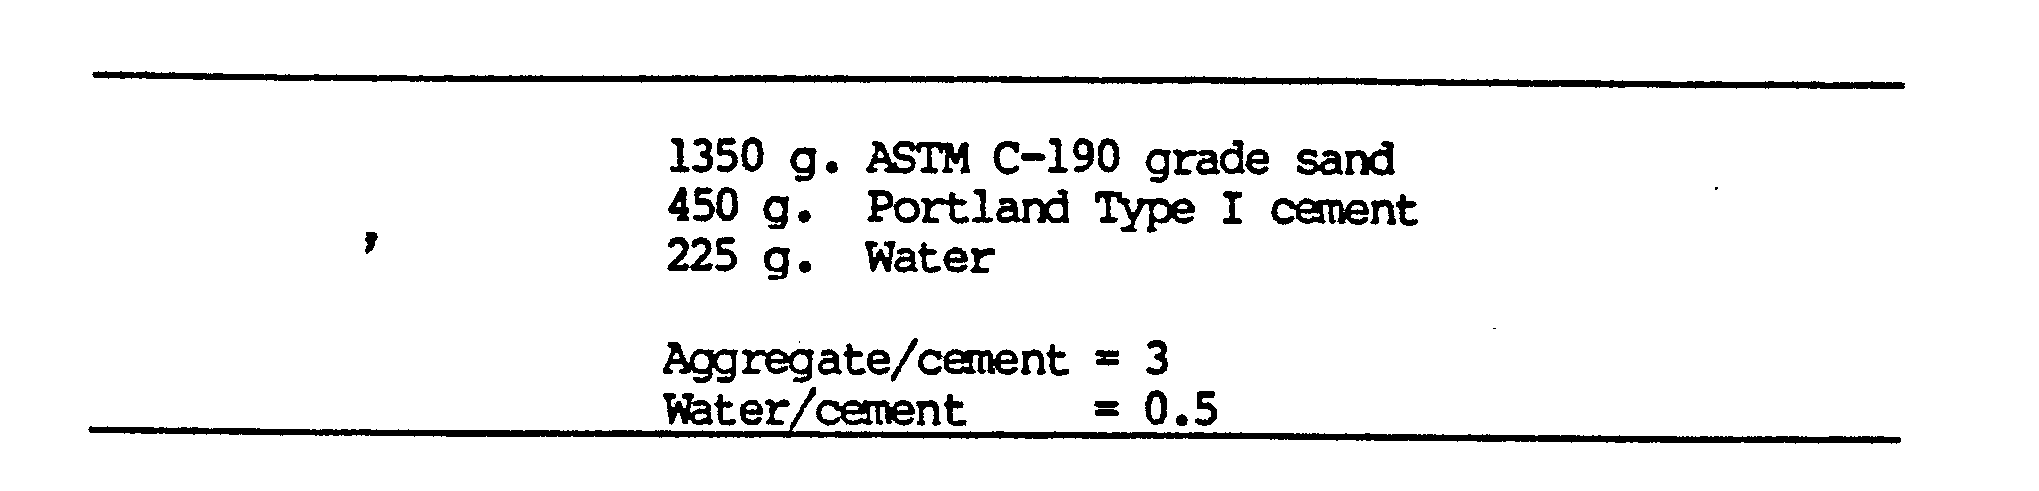 Instant Ocean Salt Mix Ratio : Patent ep a water soluble polymers containing